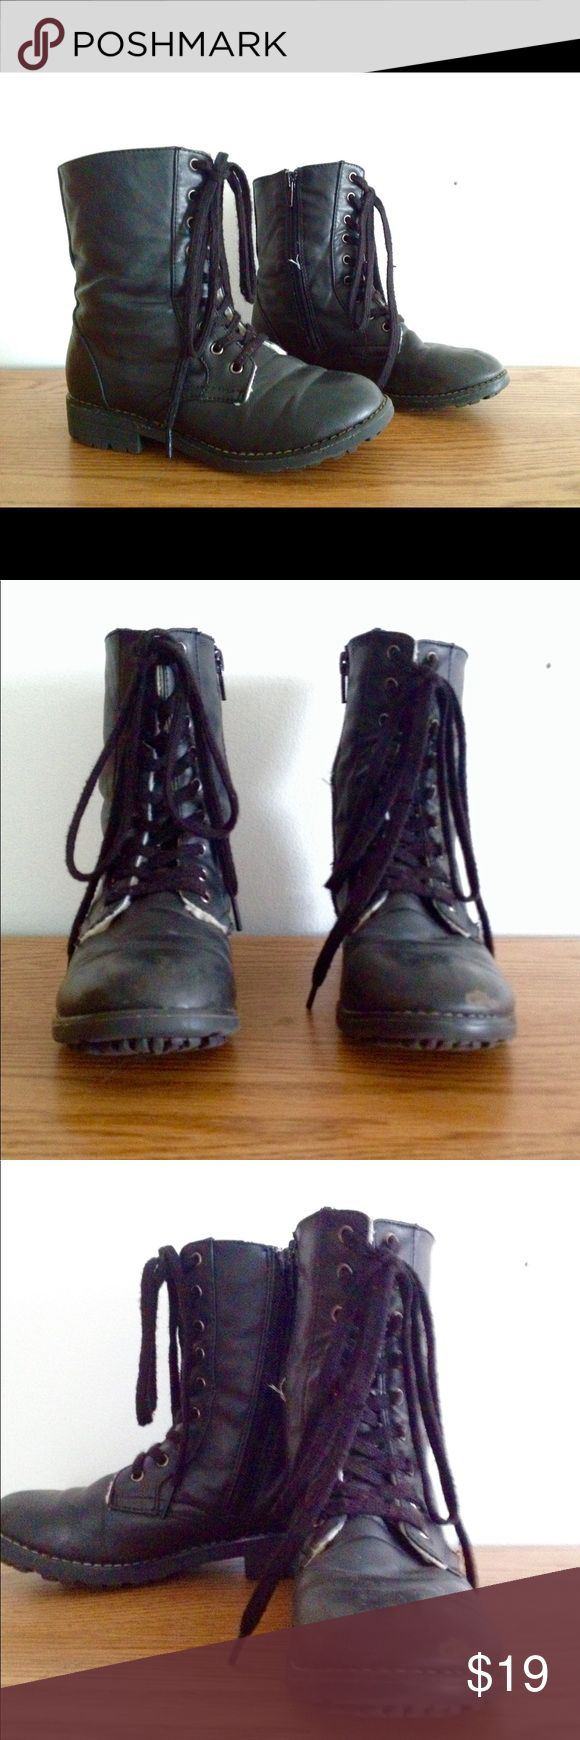 Girls black gladiator boots size 1 These wool padded girls black gladiator boots are in great condition offers are welcome Candie's Shoes Boots